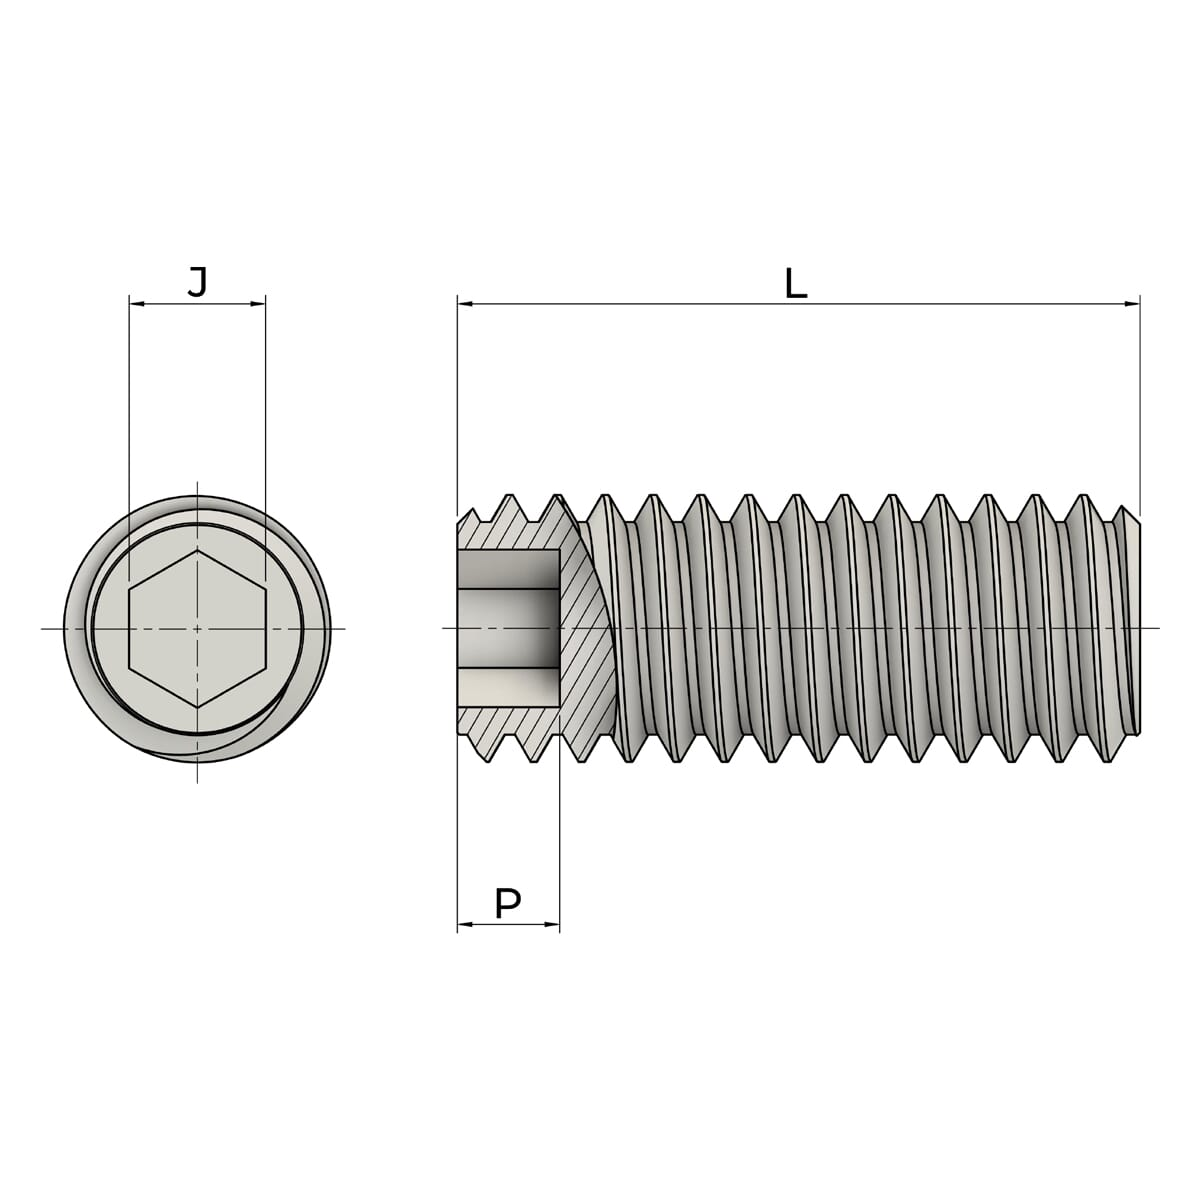 M12 x 25mm Flat Point Set / Grub Screws (DIN 913) - Marine Stainless Steel (A4) Drawing